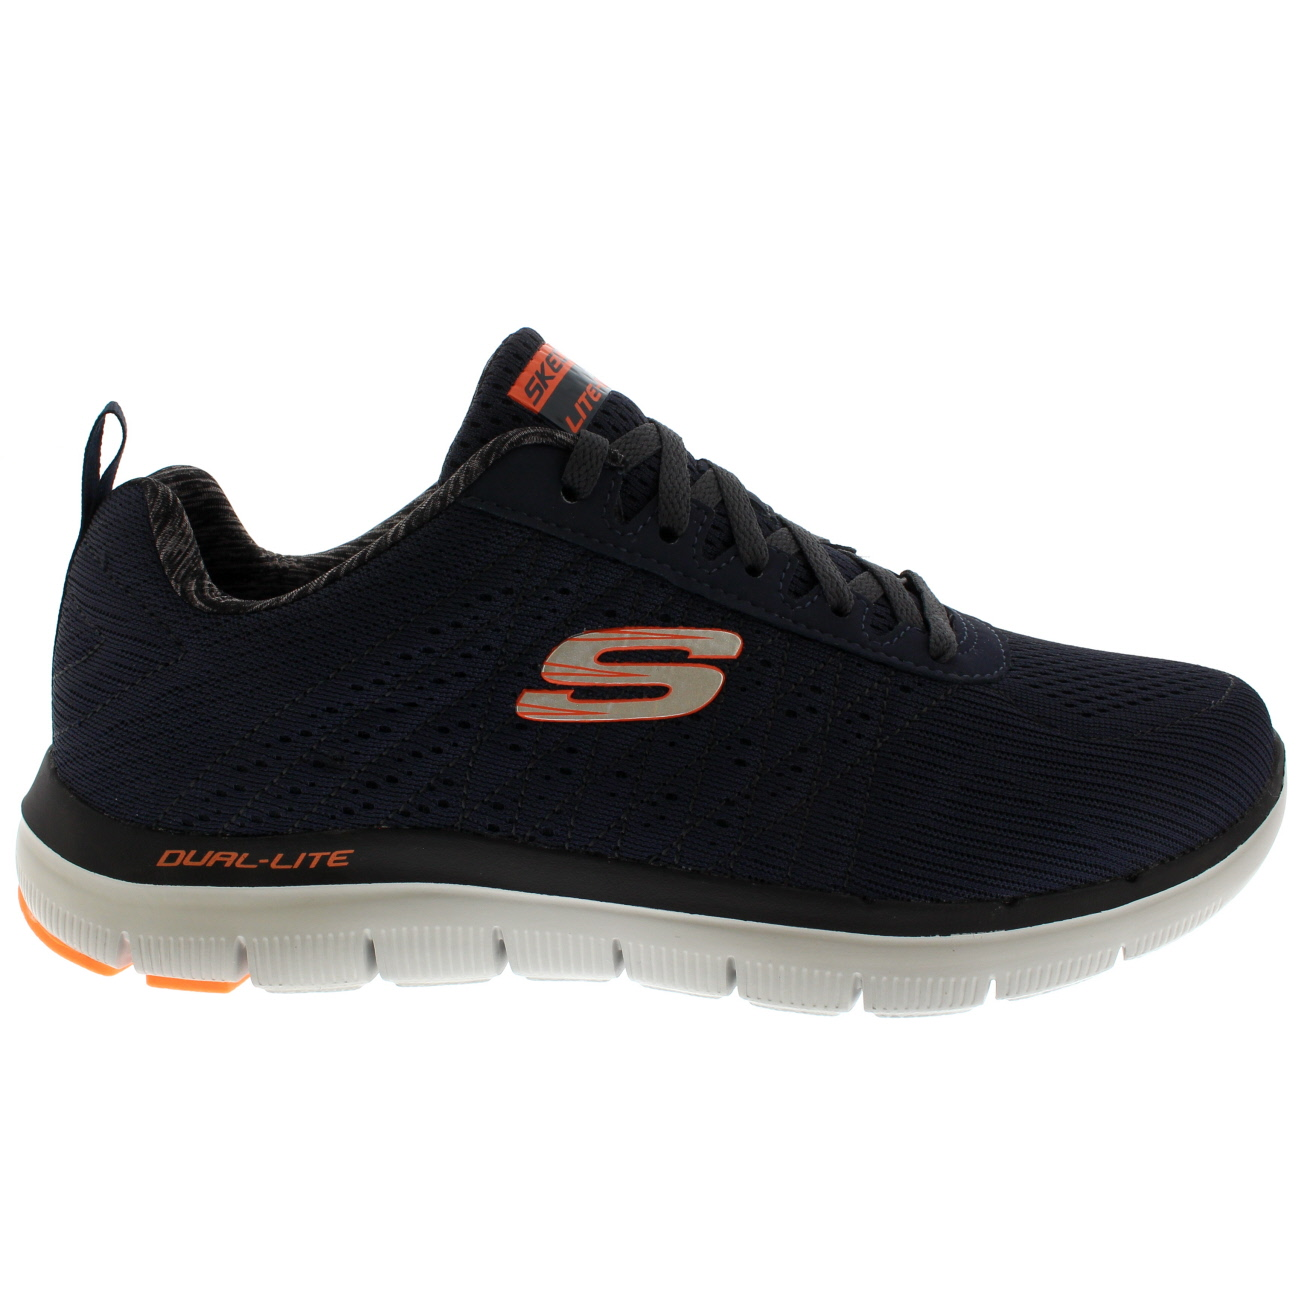 Skechers Sko For Menn Minne Skum HGrl30N